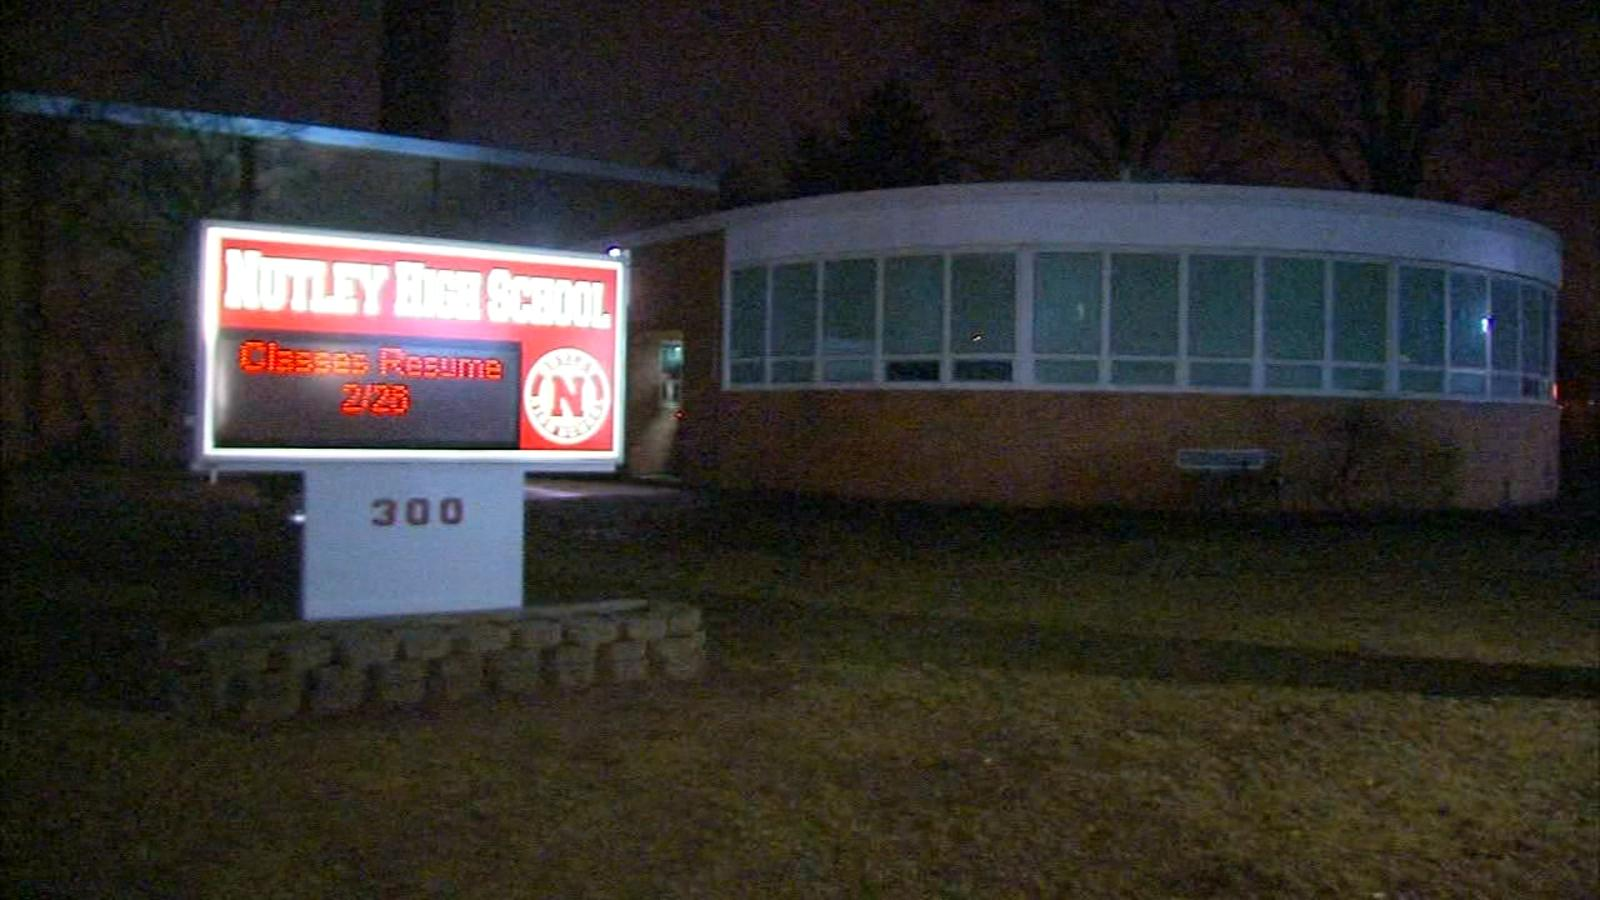 VIDEO: All seven schools in Nutley, New Jersey, are closed after a threatening video was posted on social media.